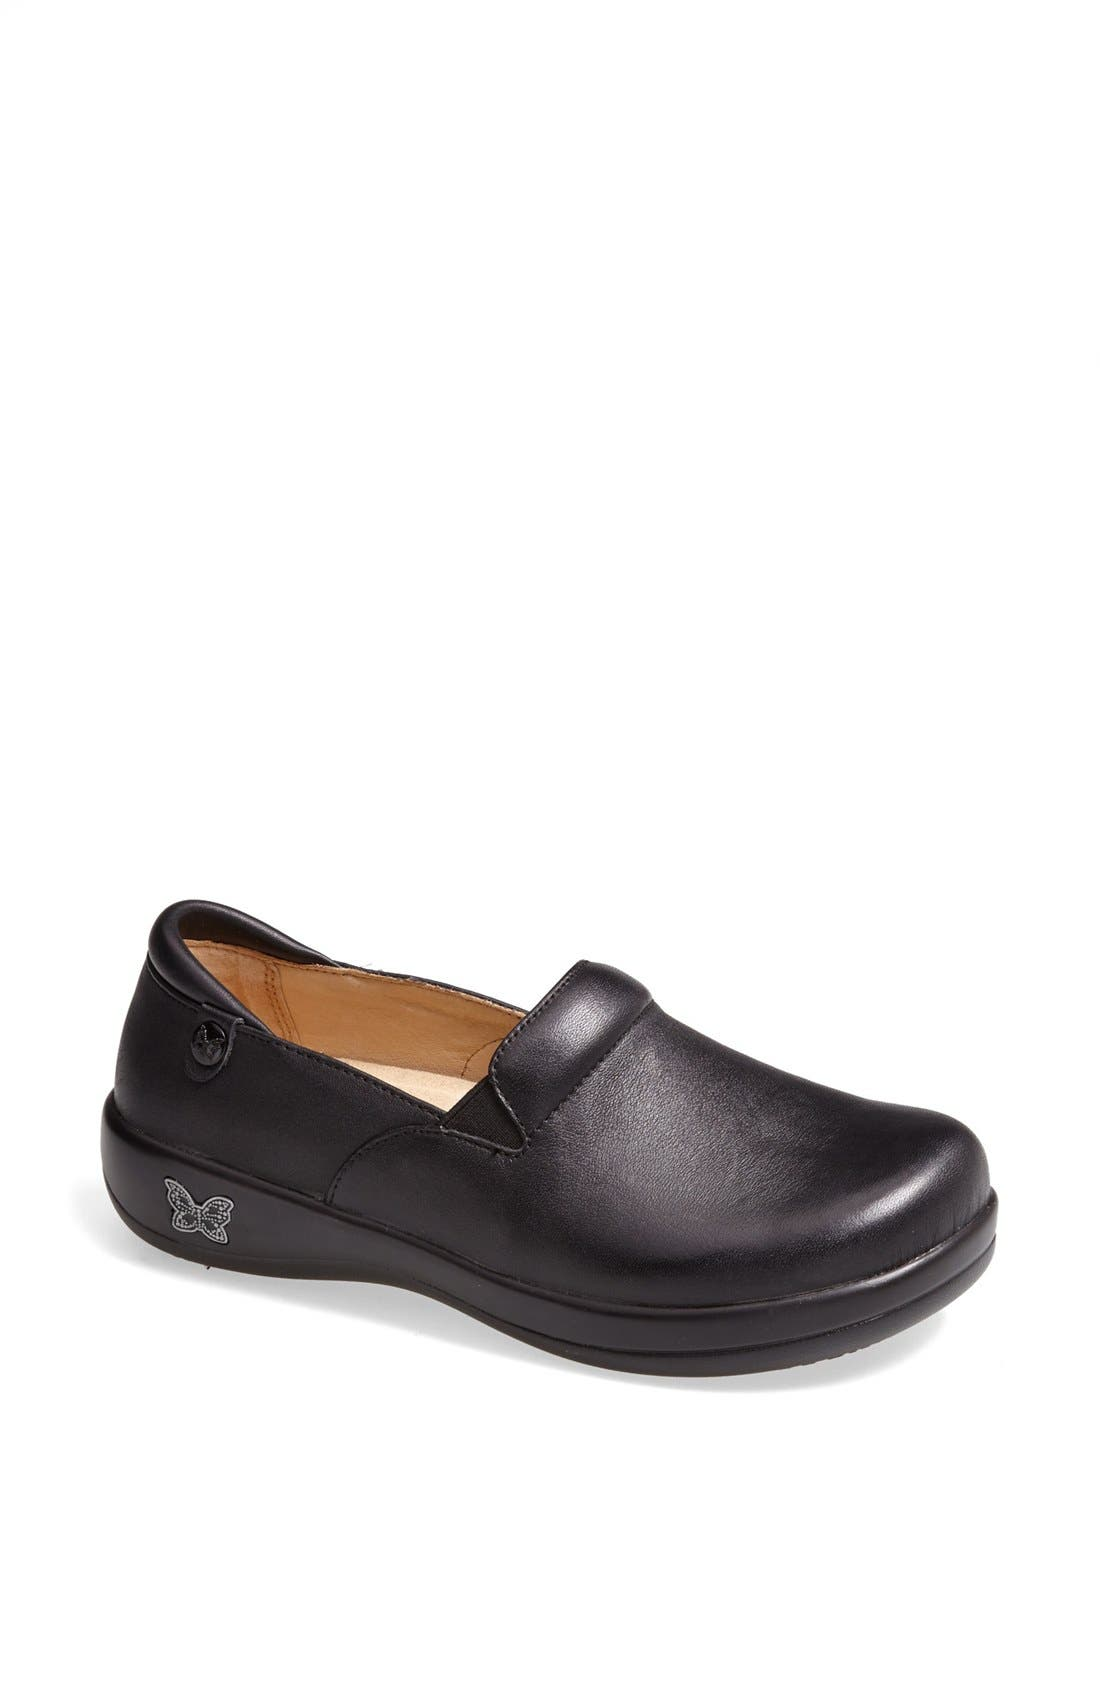 A lightweight rocker platform perfects the all-day ease of a feminine clog designed with plenty of plush, memory-foam cushioning. Style Name: Alegria \\\'Keli\\\' Embossed Clog. Style Number: 986345. Available in stores.